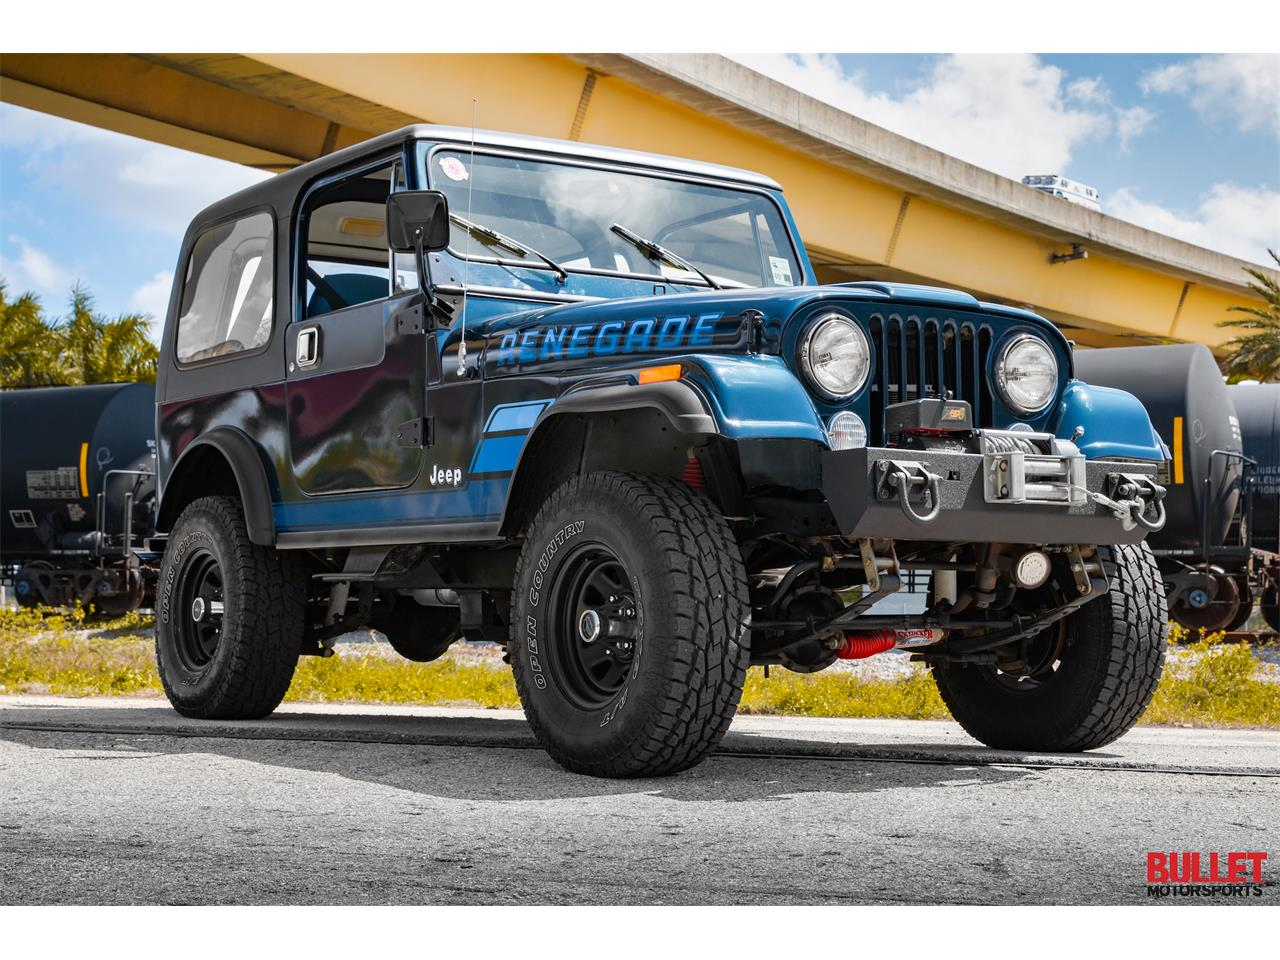 Large Picture of '83 Jeep CJ7 located in Florida - $17,000.00 - PSWH